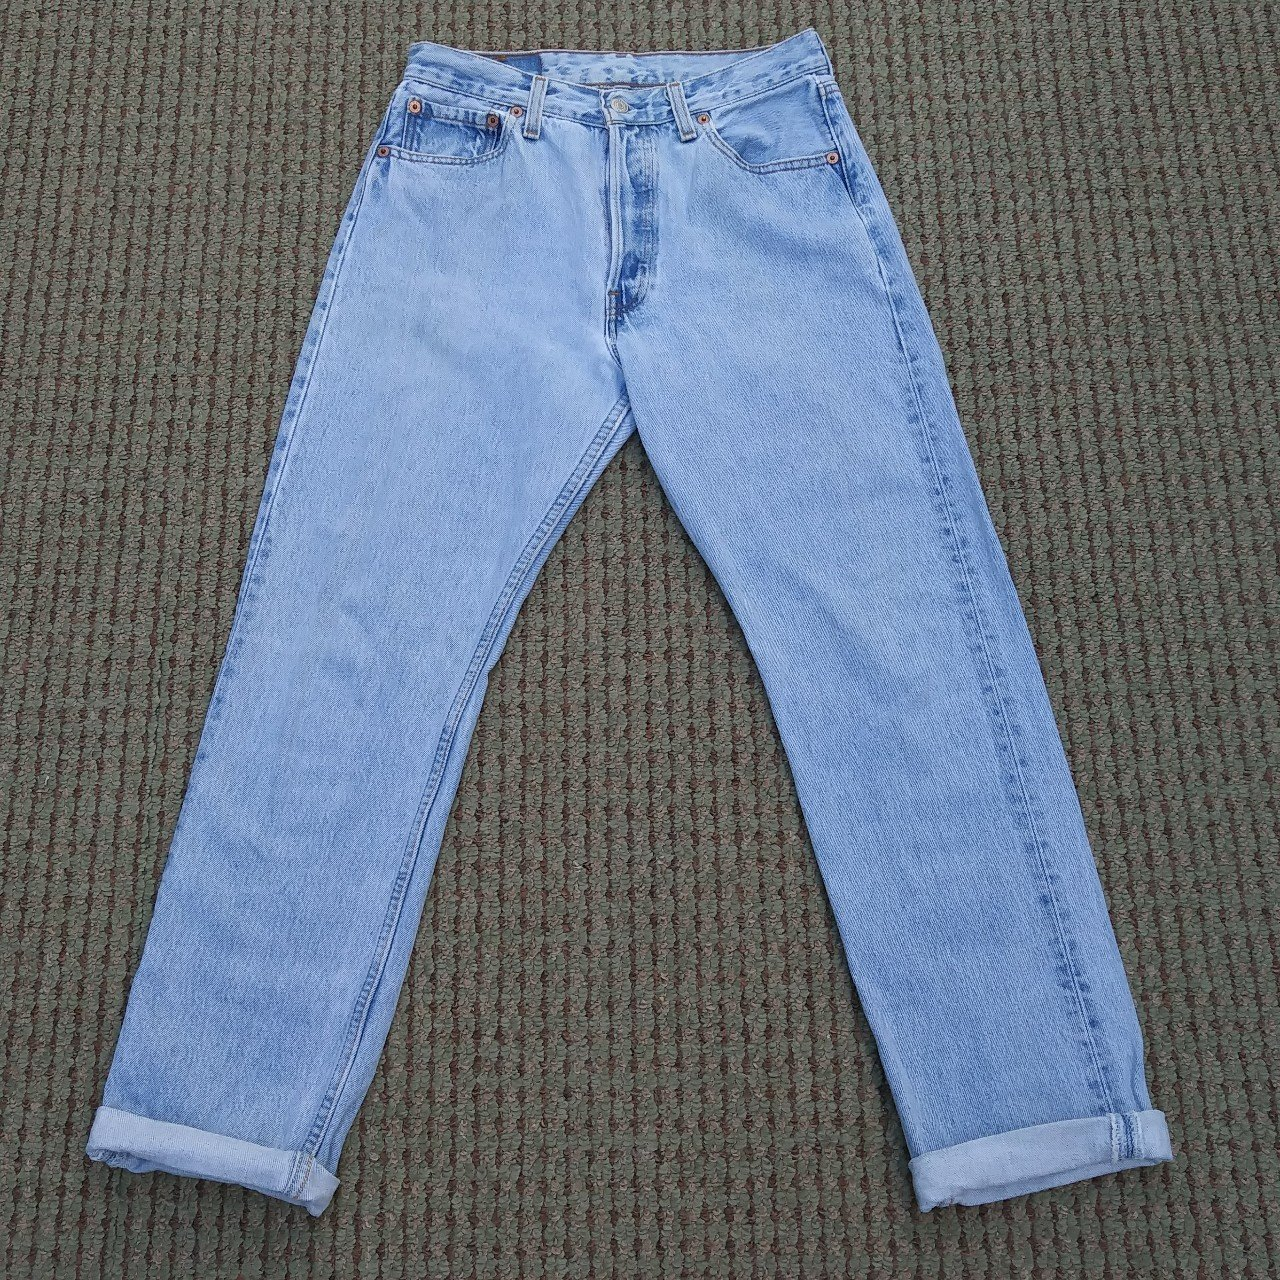 Vintage womens Levis 501 jeans. Light wash. Faded. Worn. Tag - Depop bc5a2e8c5309